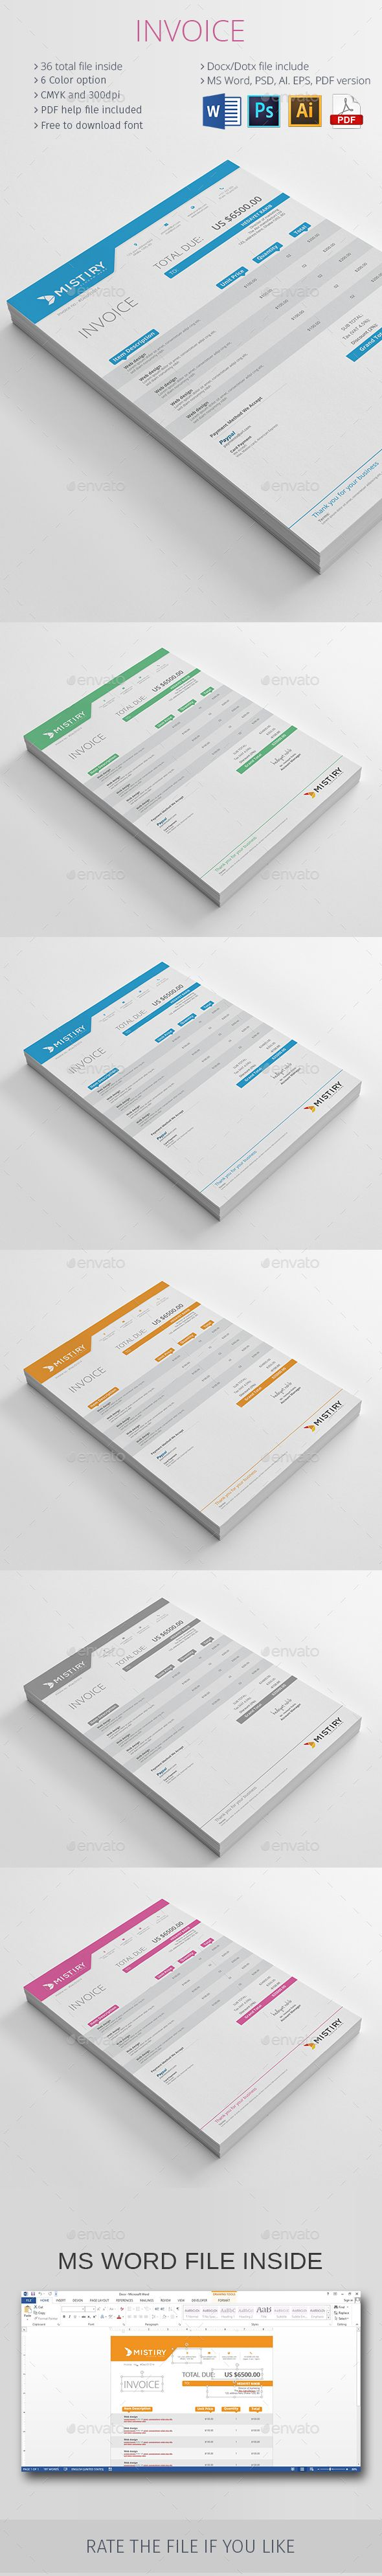 Purchase Proposal Template] Magic Morph Powerpoint Template Business ...